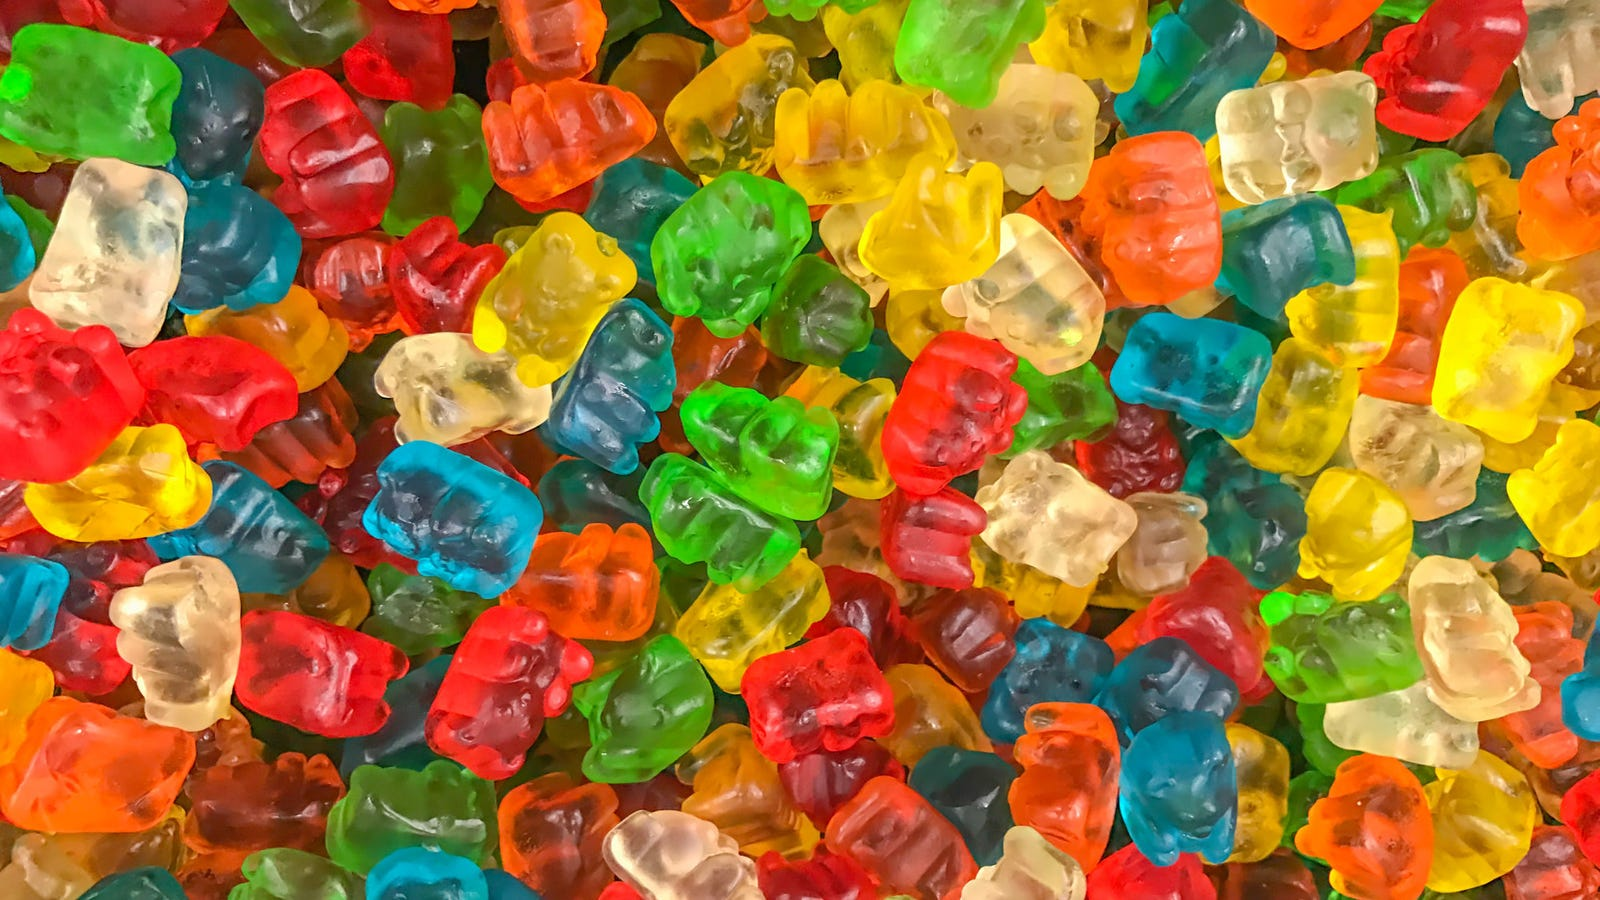 $33K in edibles seized in Florida for looking too much like